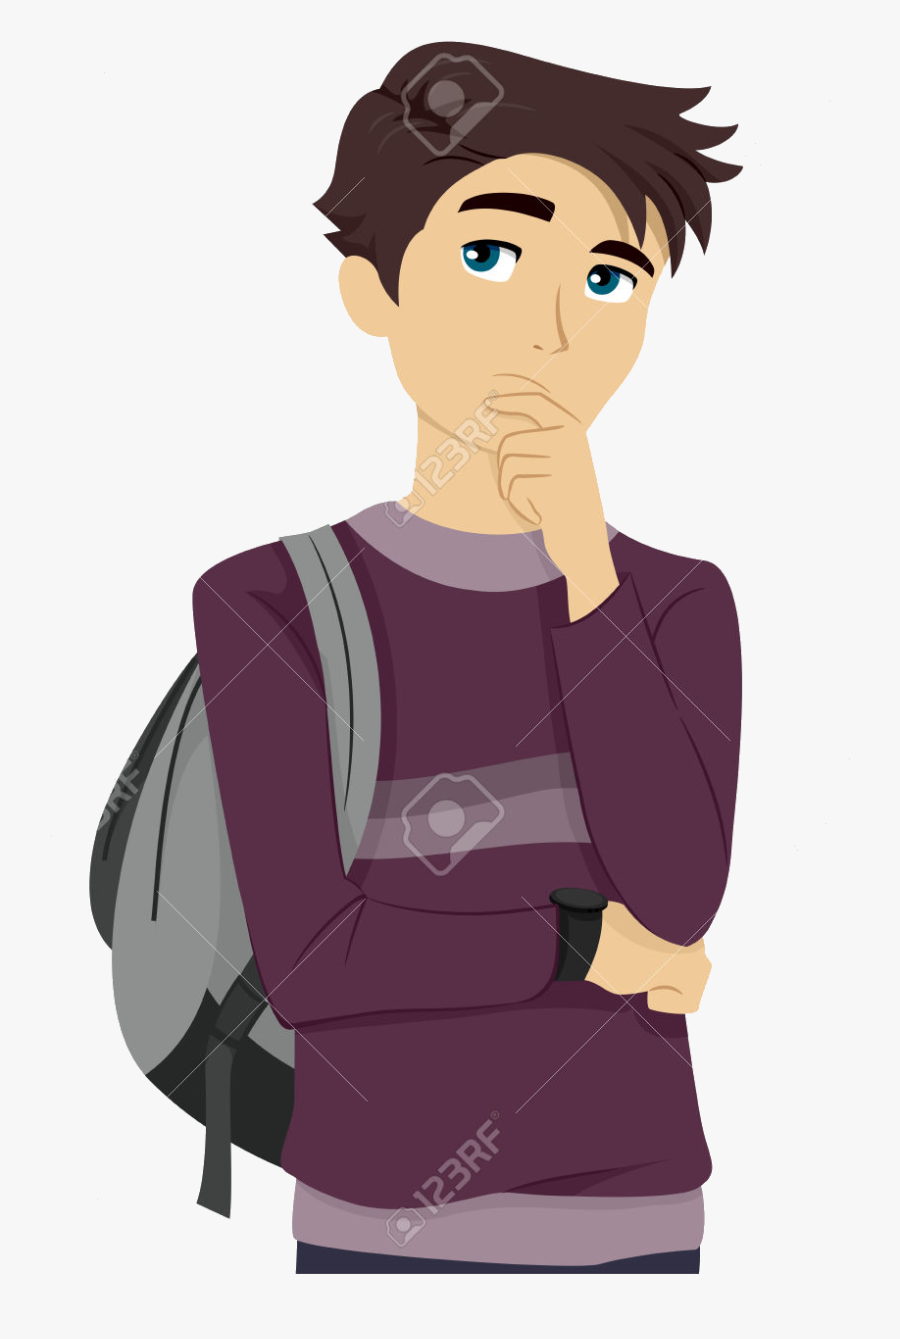 College Student Thinking Clipart Abeoncliparts Cliparts - College Student College Clipart, Transparent Clipart